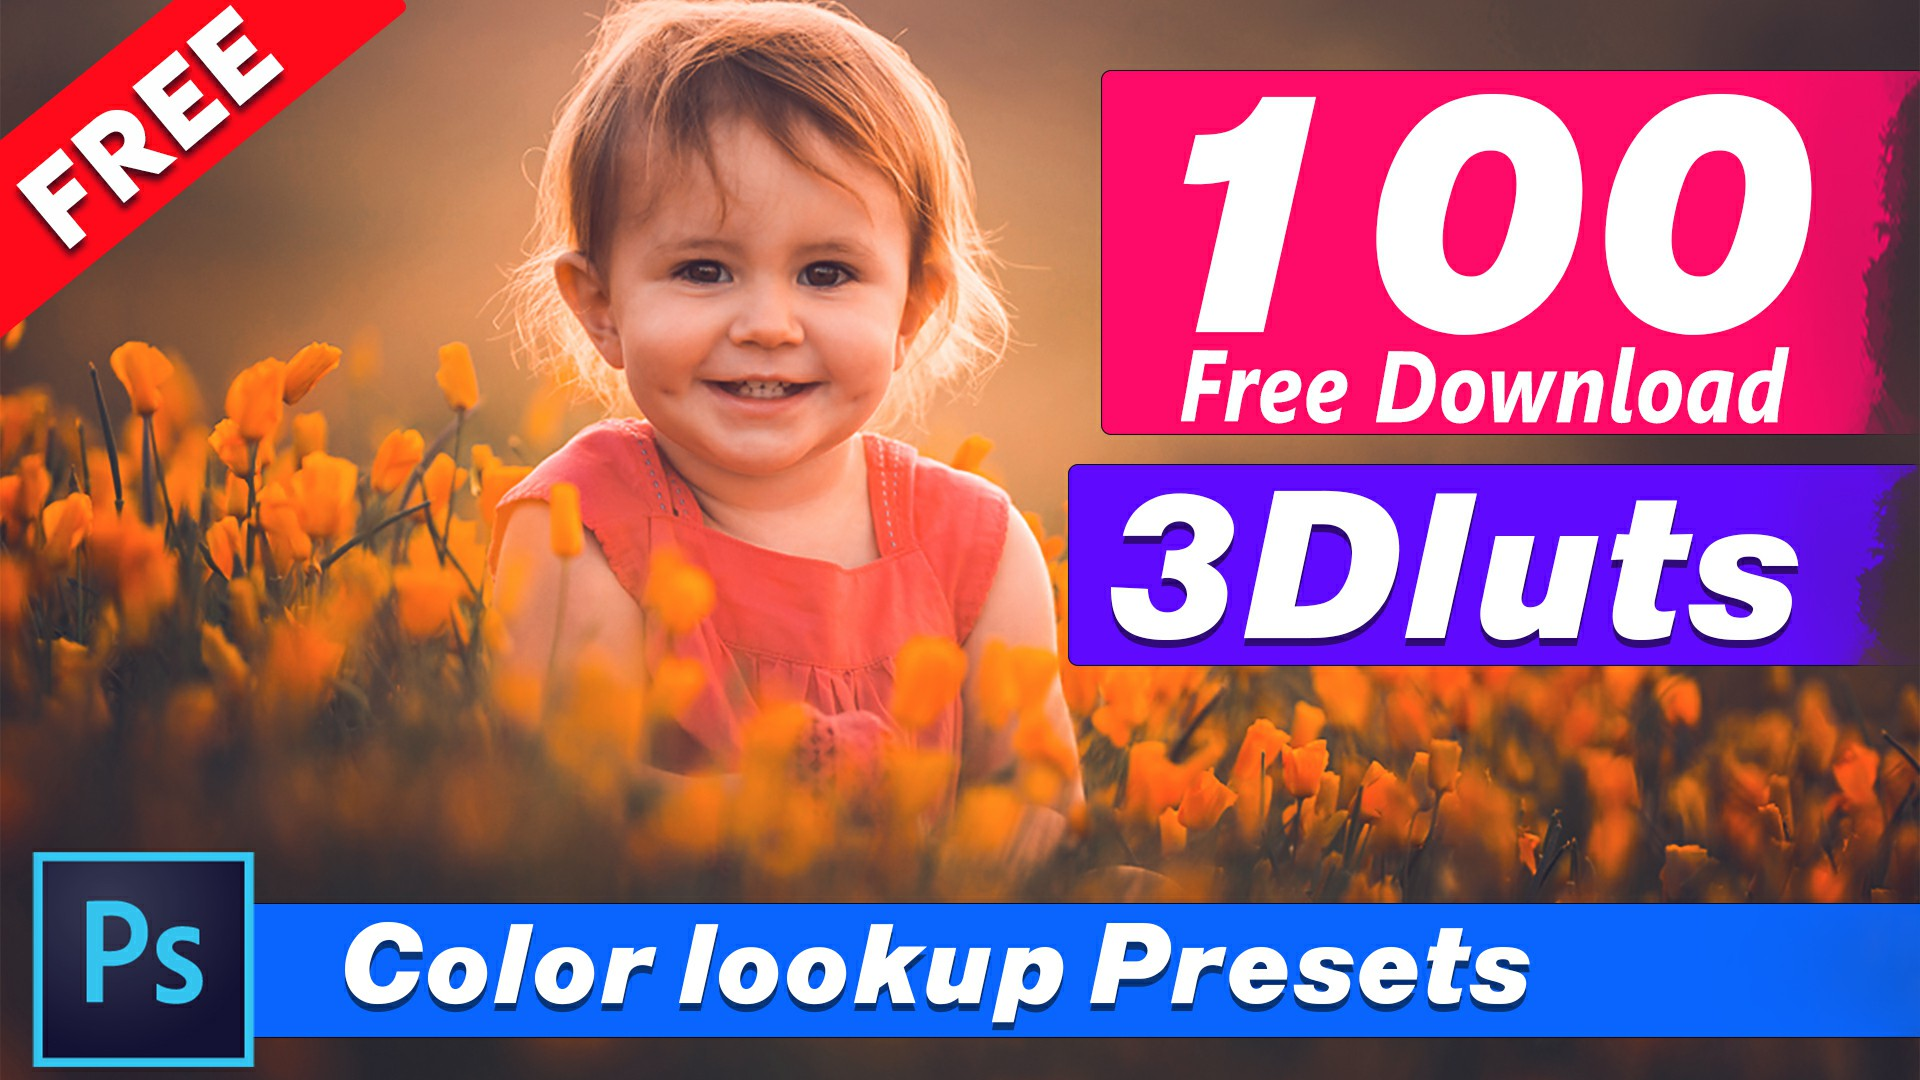 color lookup presets